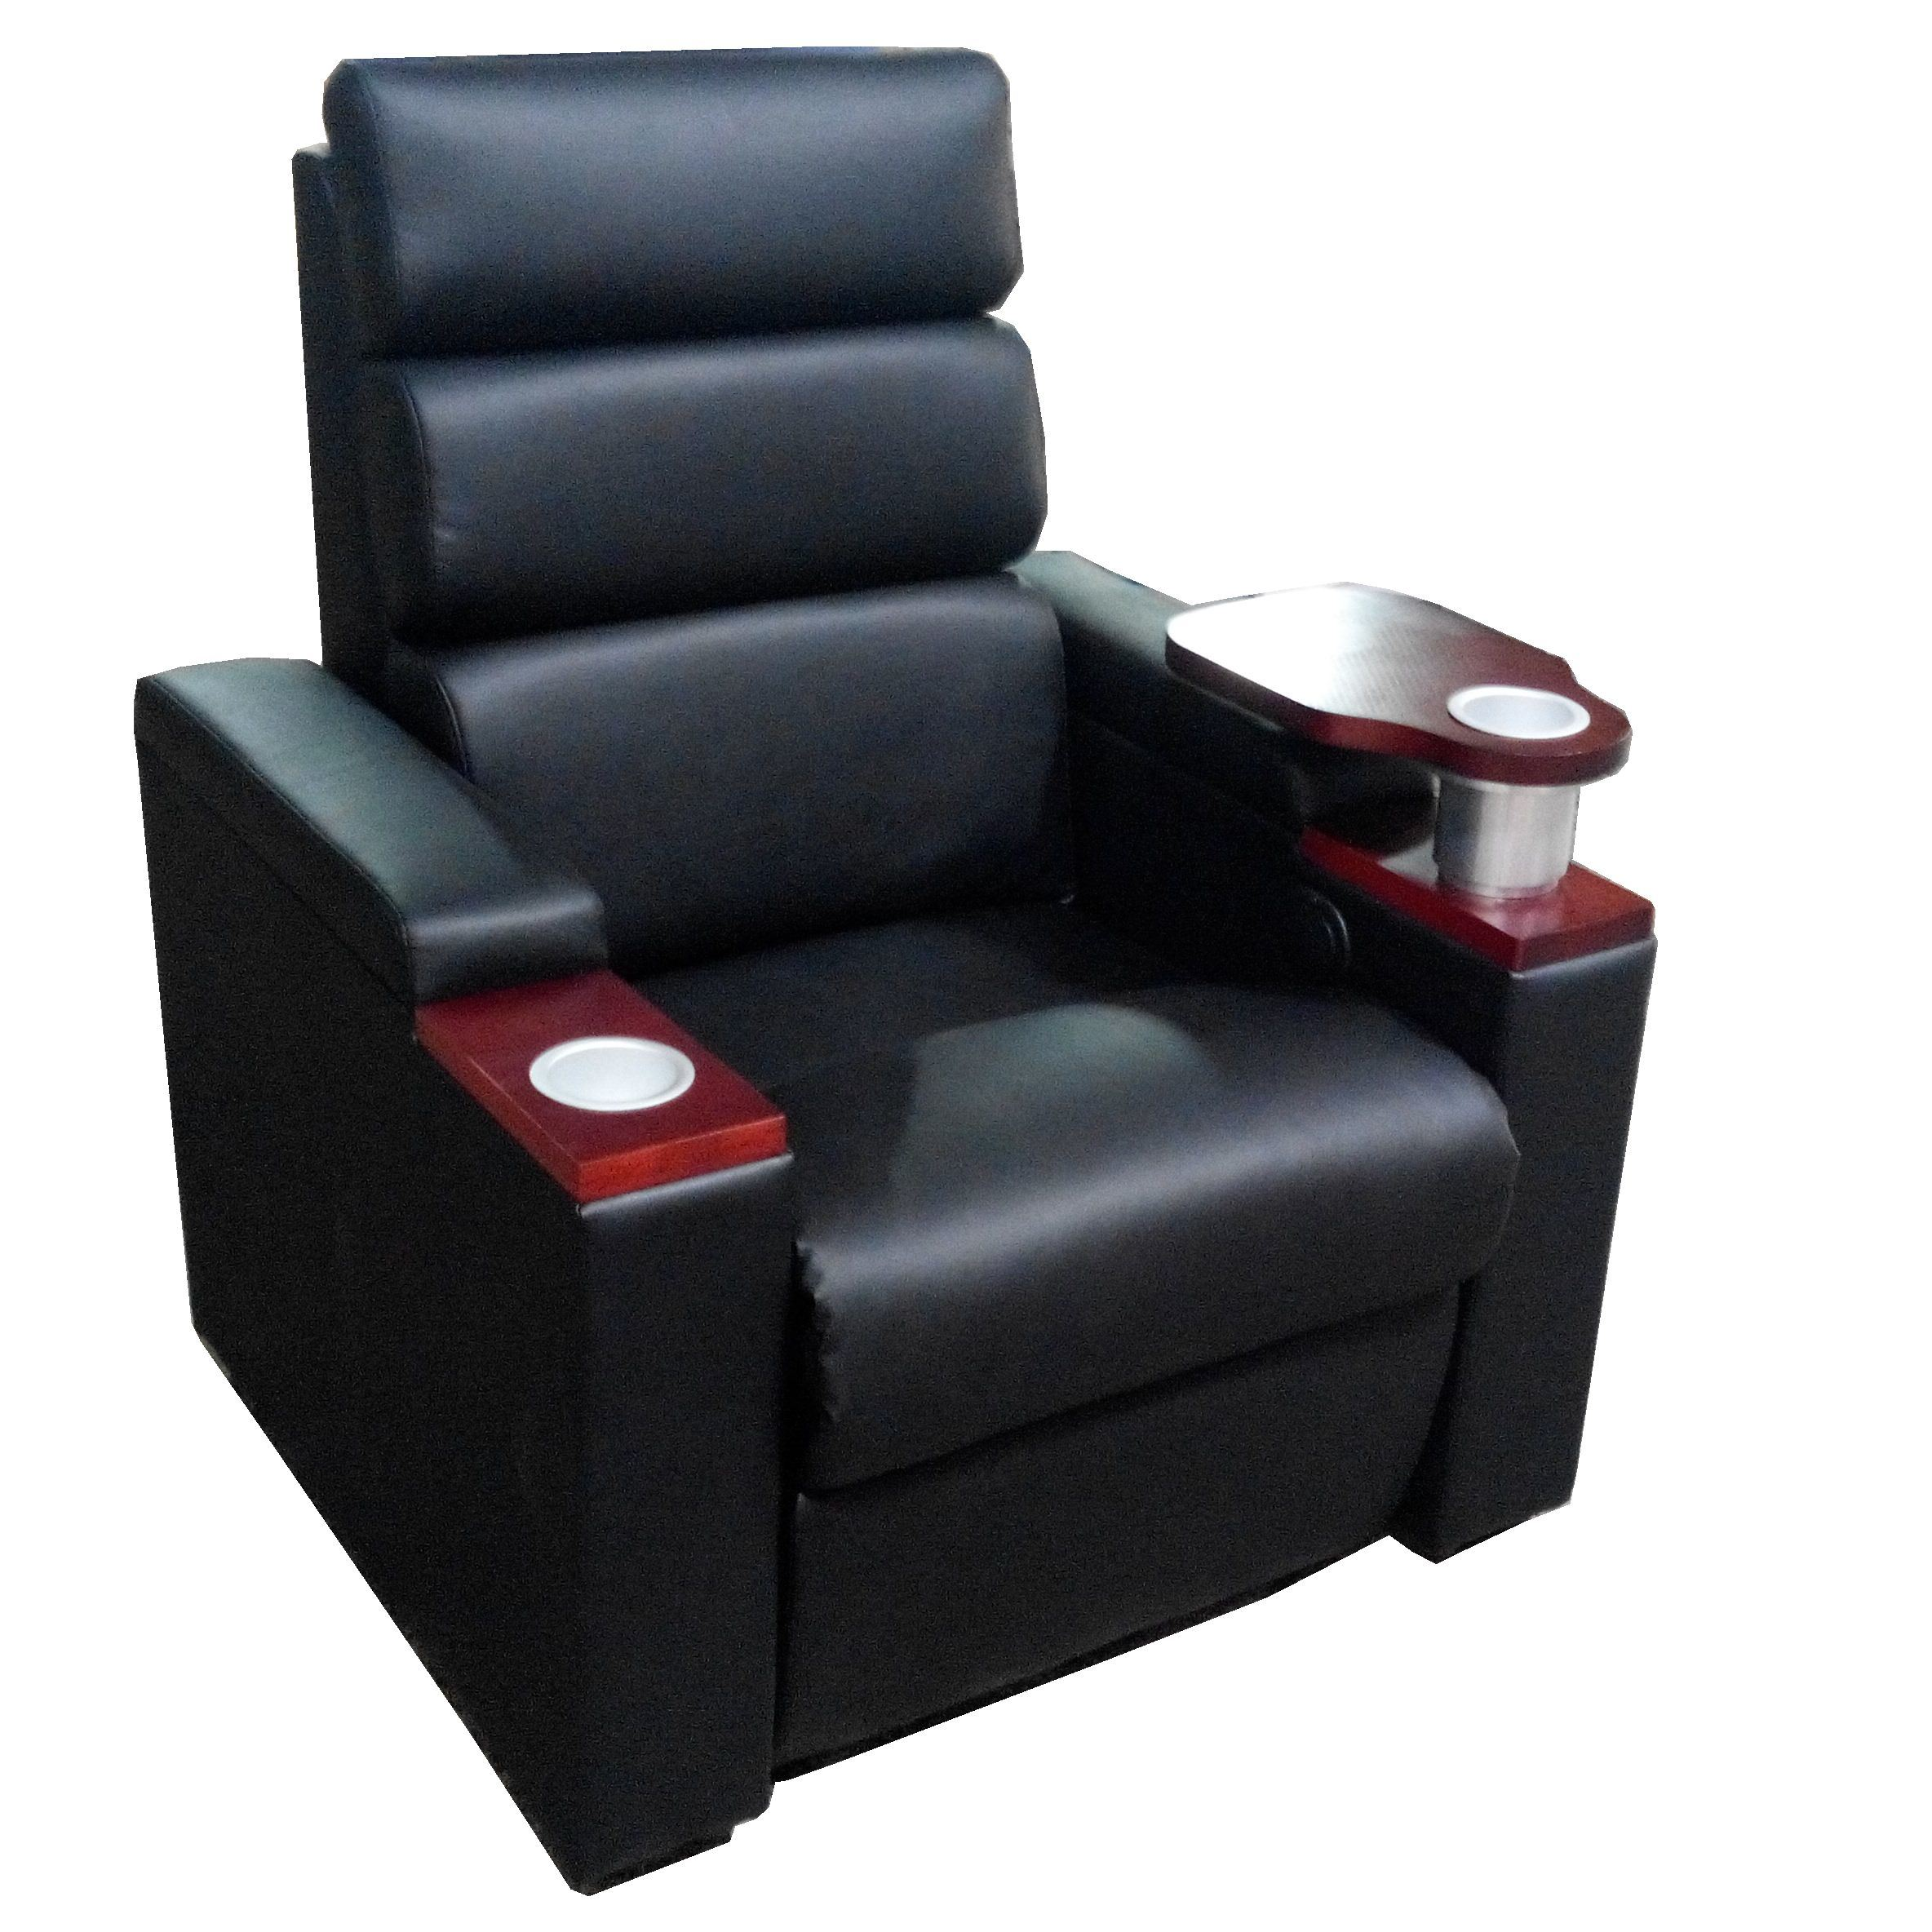 product seat kqijmthuhnvy sofa recliner chair reclining theater vip cinema china electric real theatre leather movie